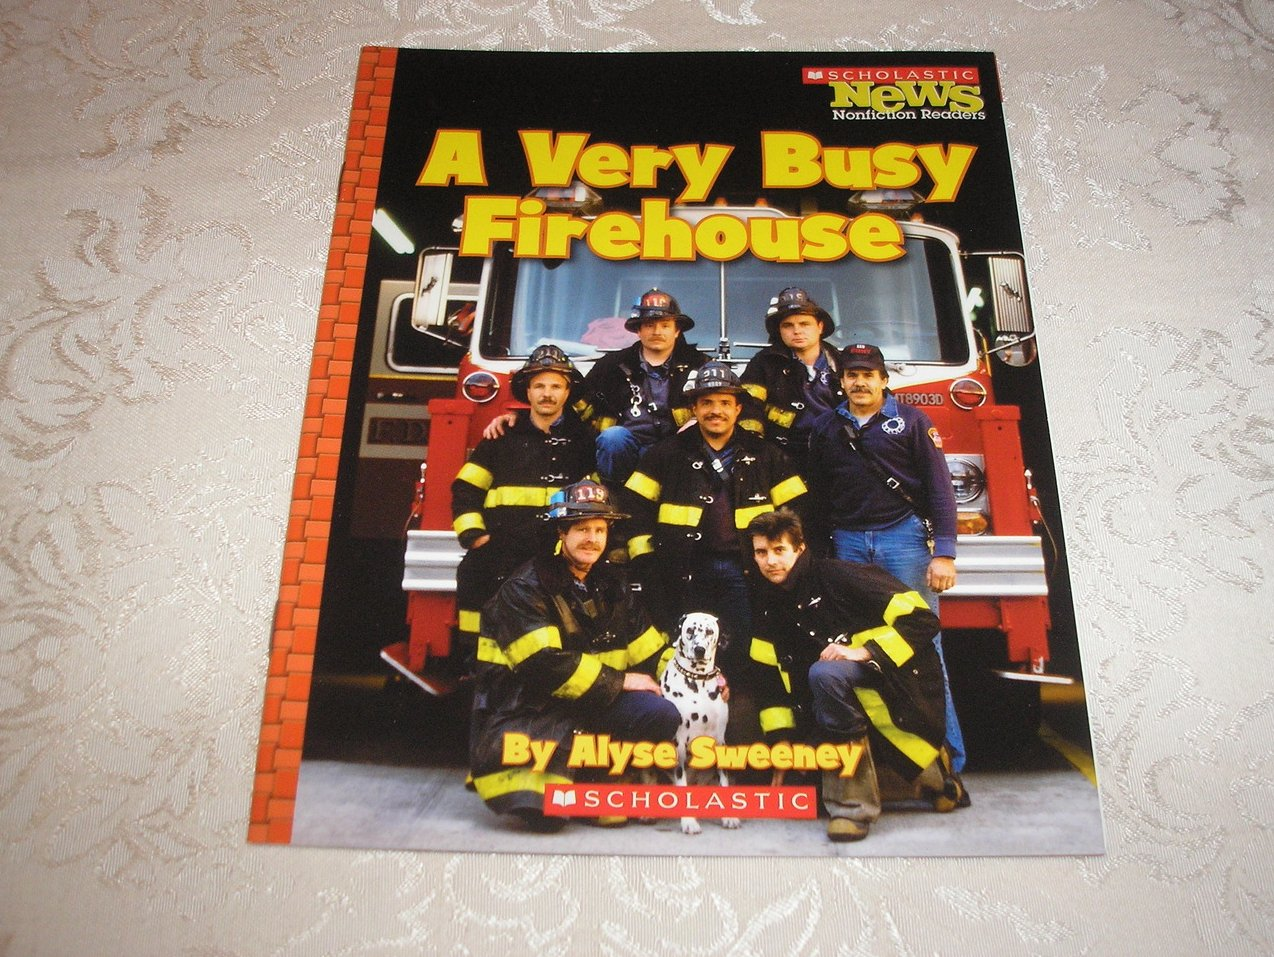 A Very Busy Firehouse Alyse Sweeney new Scholastic News Nonfiction sc Reader